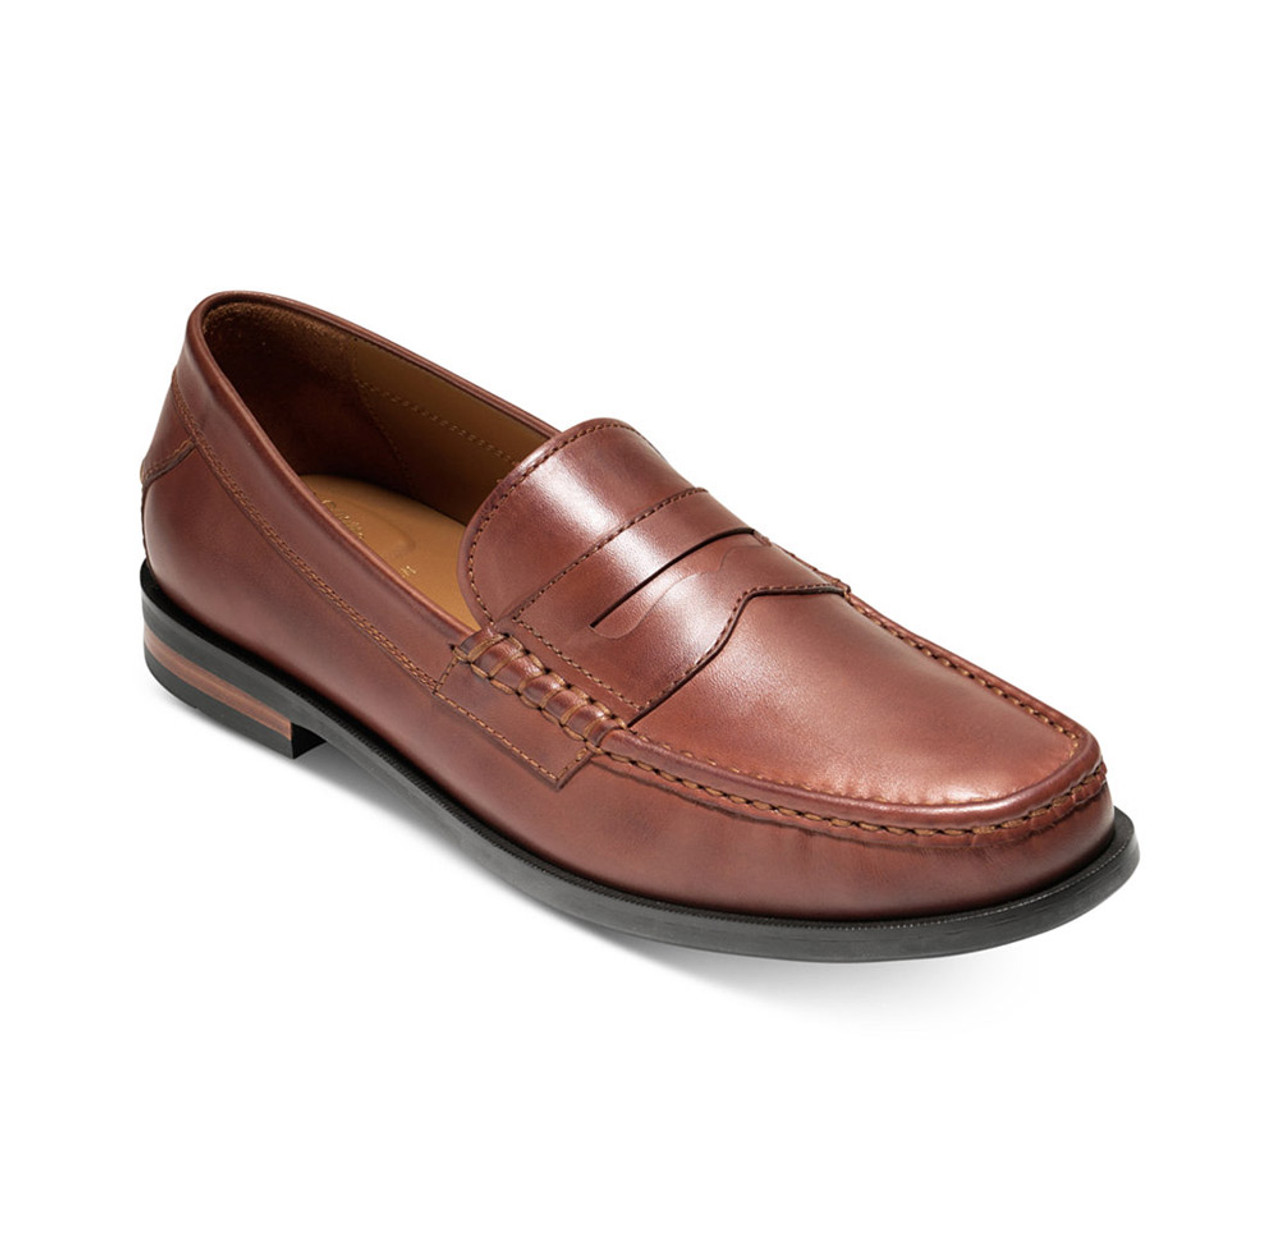 e59cadf4861 Cole Haan Men s Pinch Friday Contemporary Penny Loafer Woodbury Handstain -  Shop now   Shoolu.